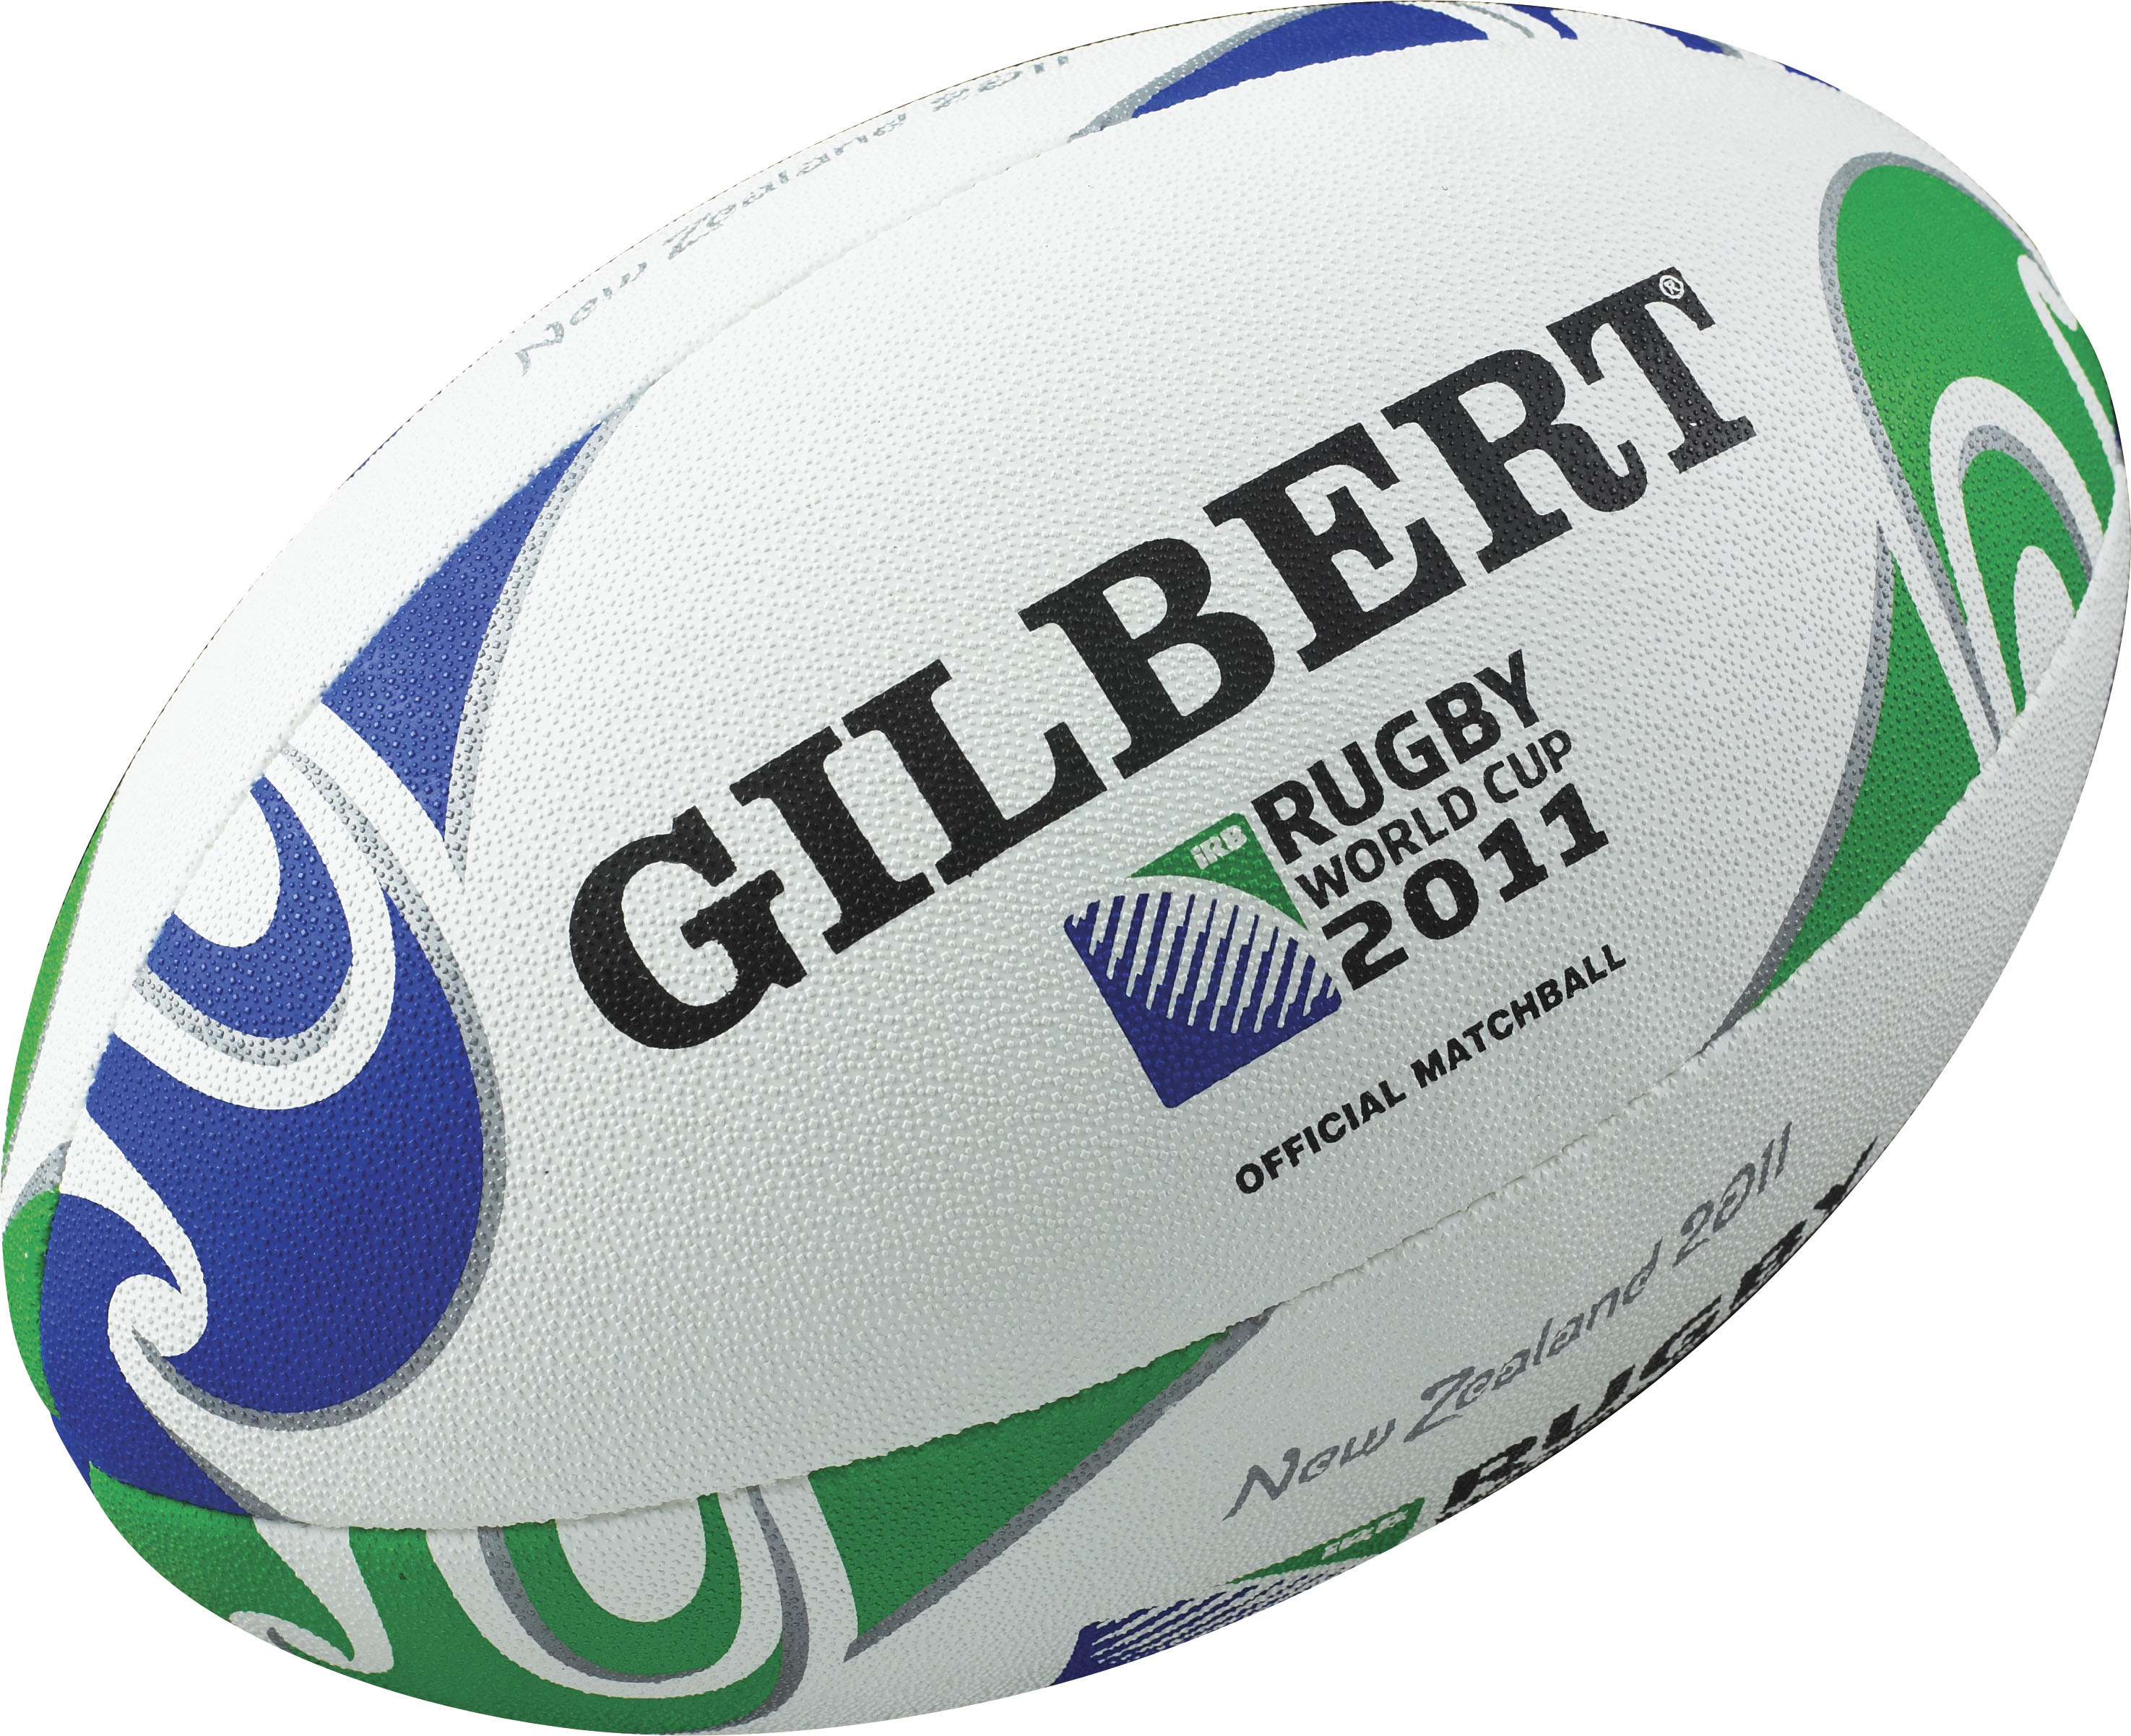 RWC-2011-Official-Match-Ball-2.jpg